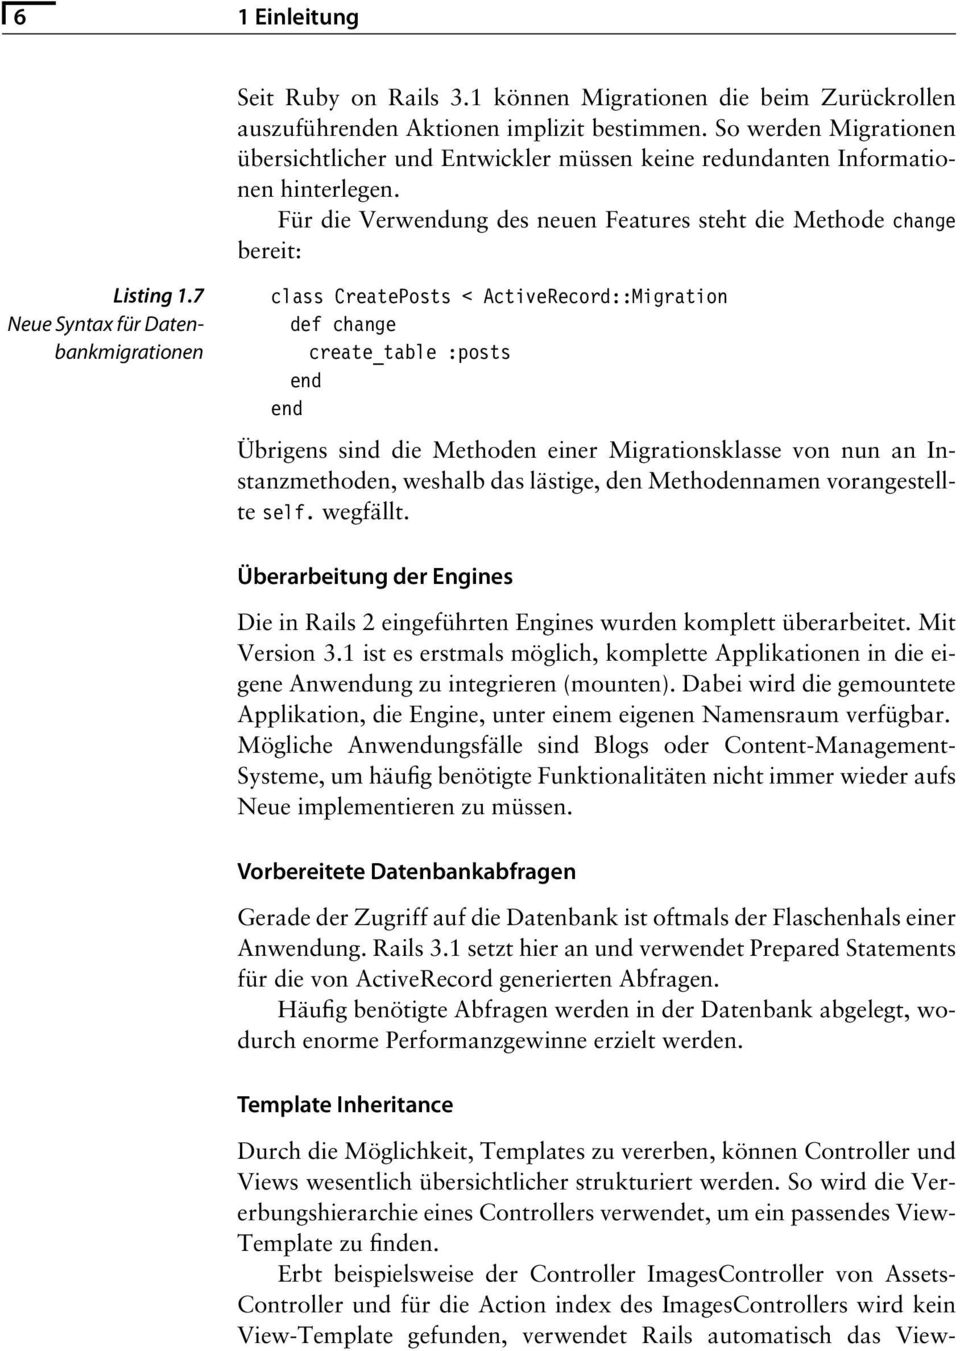 7 Neue Syntax für Datenbankmigrationen class CreatePosts < ActiveRecord::Migration def change create_table :posts end end Übrigens sind die Methoden einer Migrationsklasse von nun an Instanzmethoden,